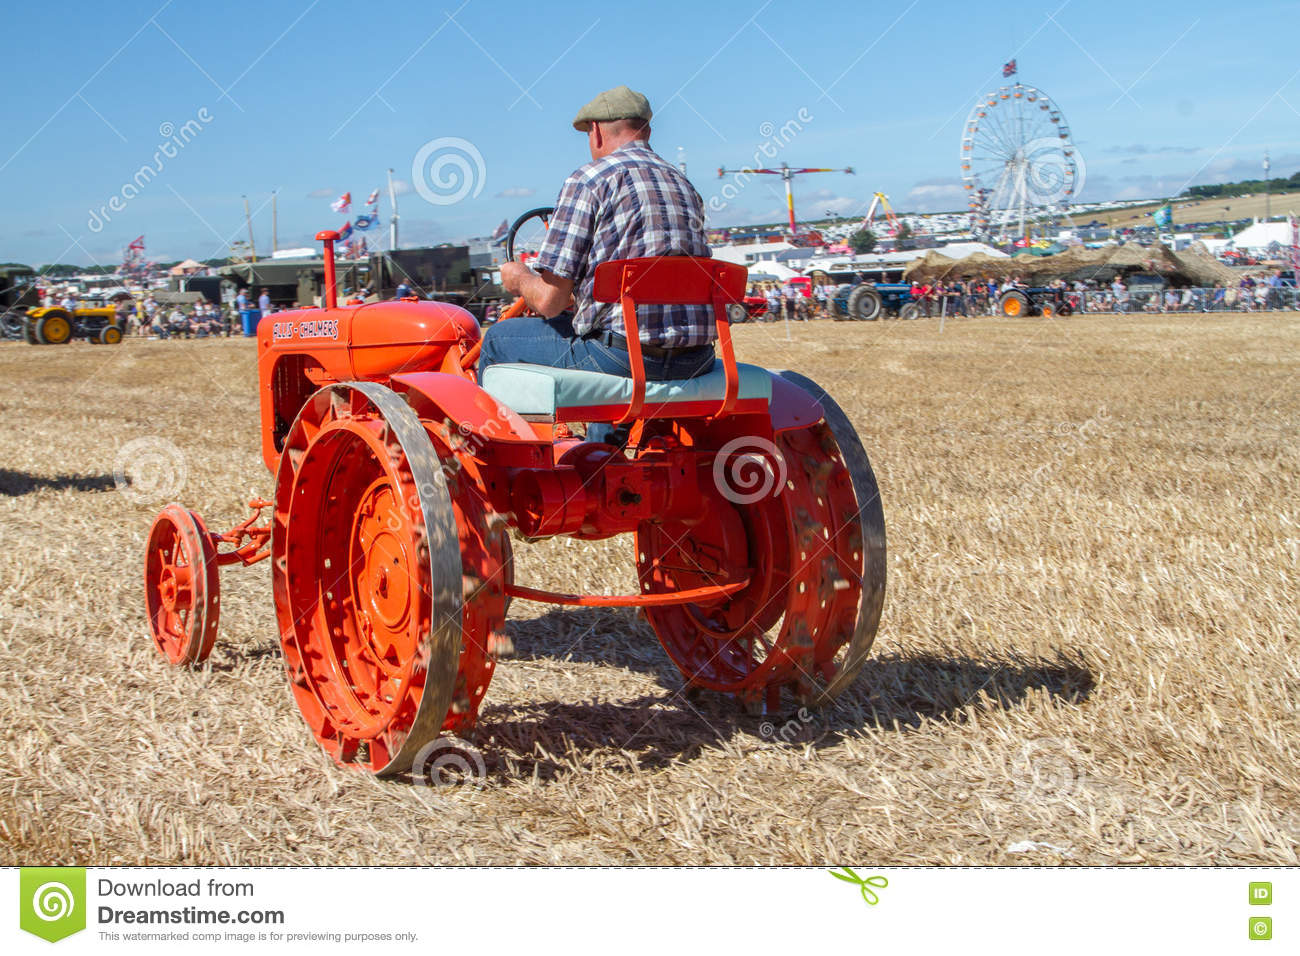 Old Orange Allis Chalmers Tractor At Show Download Preview